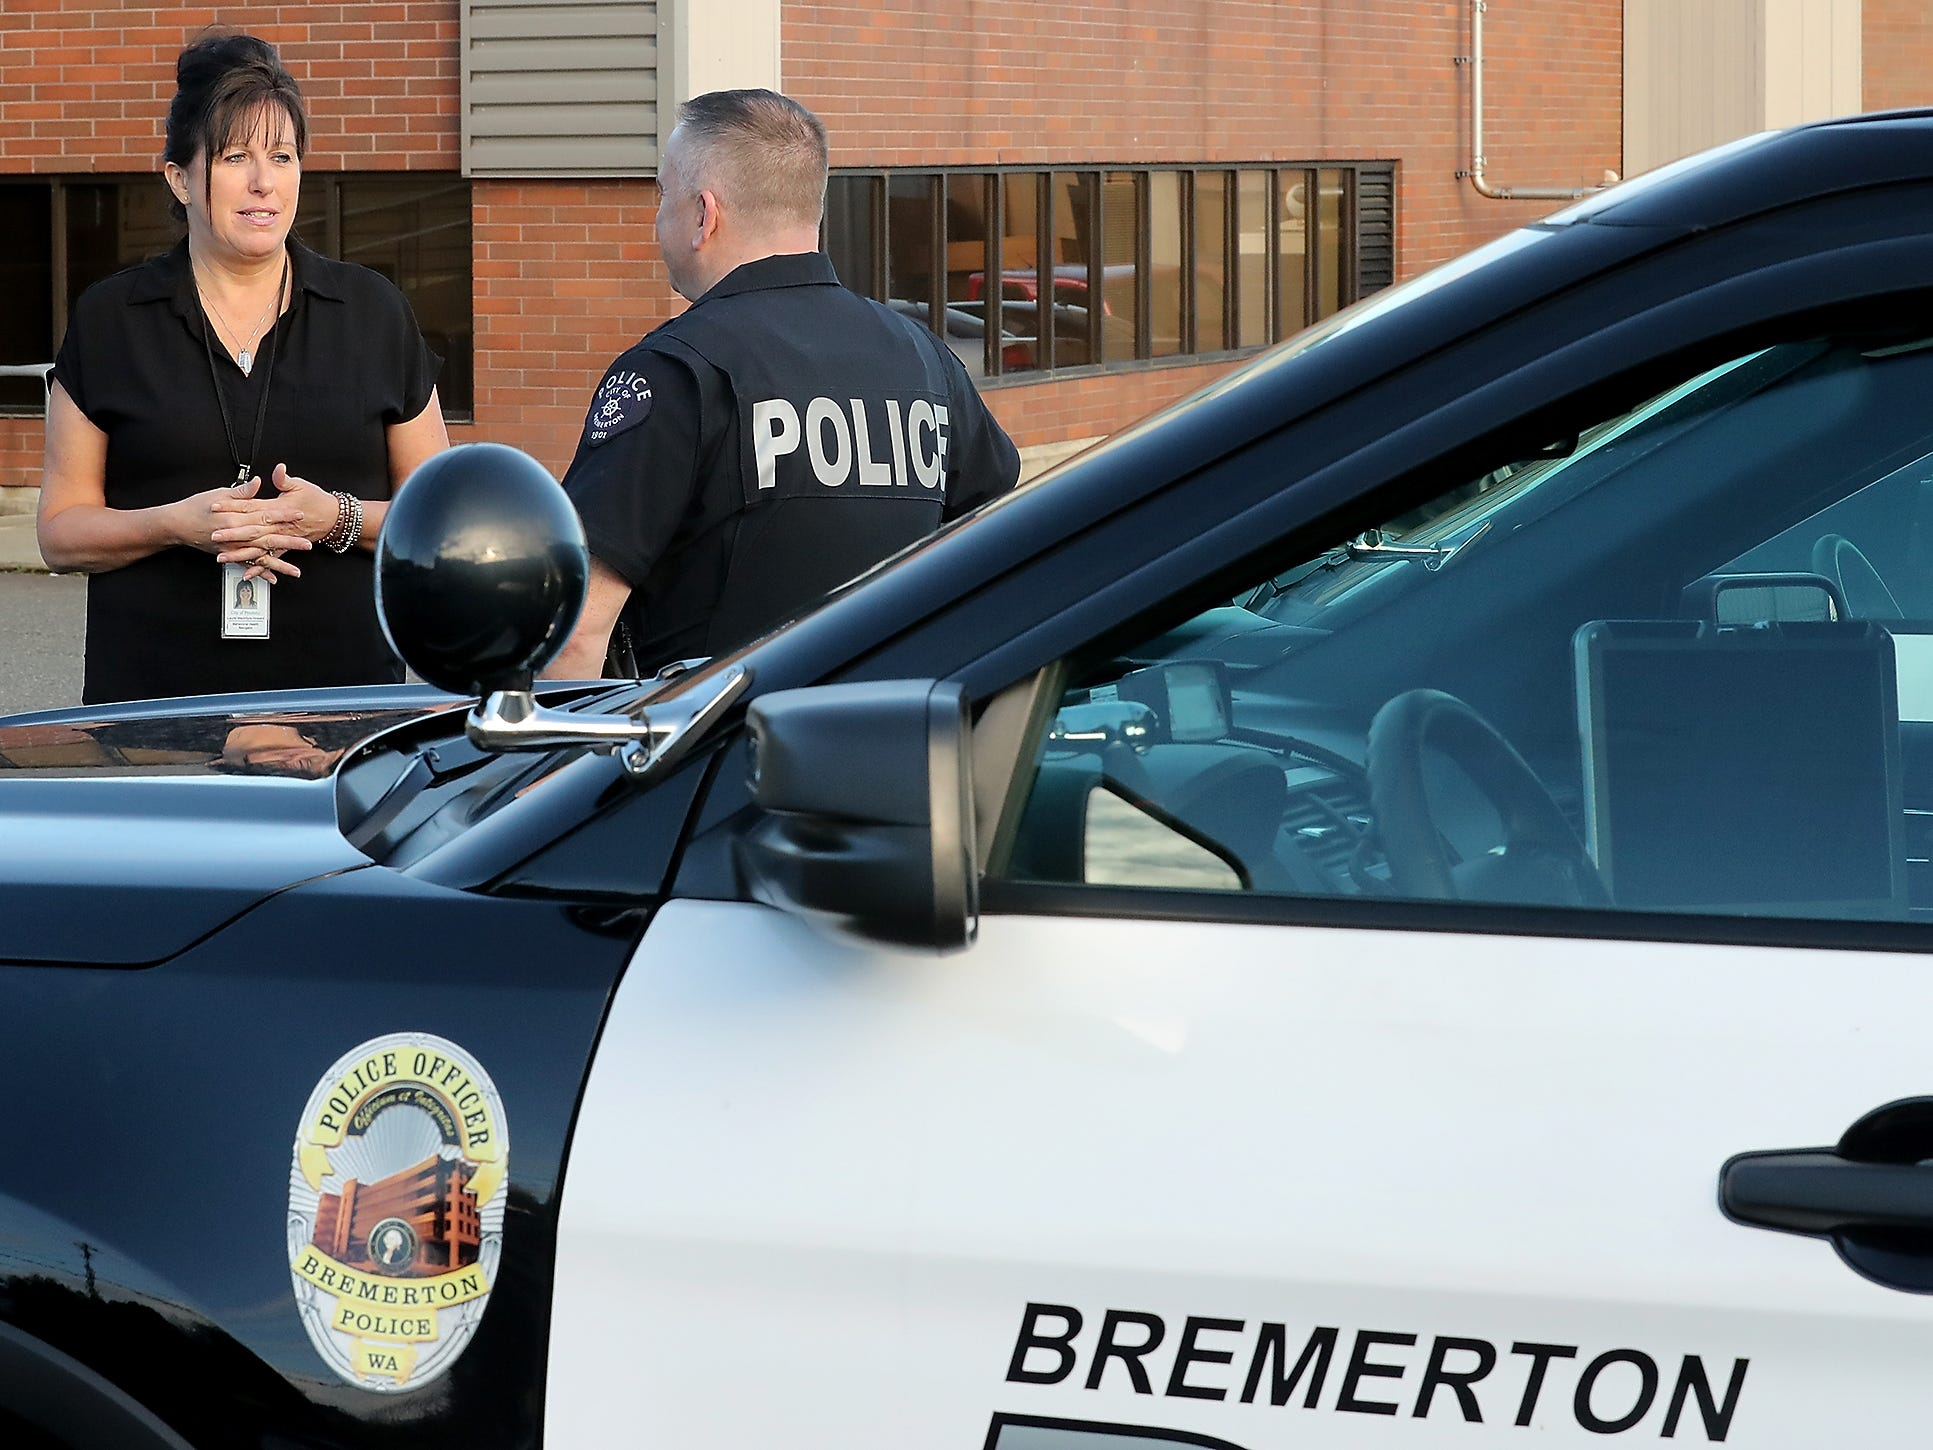 Behavioral Health Navigator Laurel MacIntyre-Howard talks with Capt. Randy Plumb at the Bremerton Police Department on Friday, November 16, 2018.